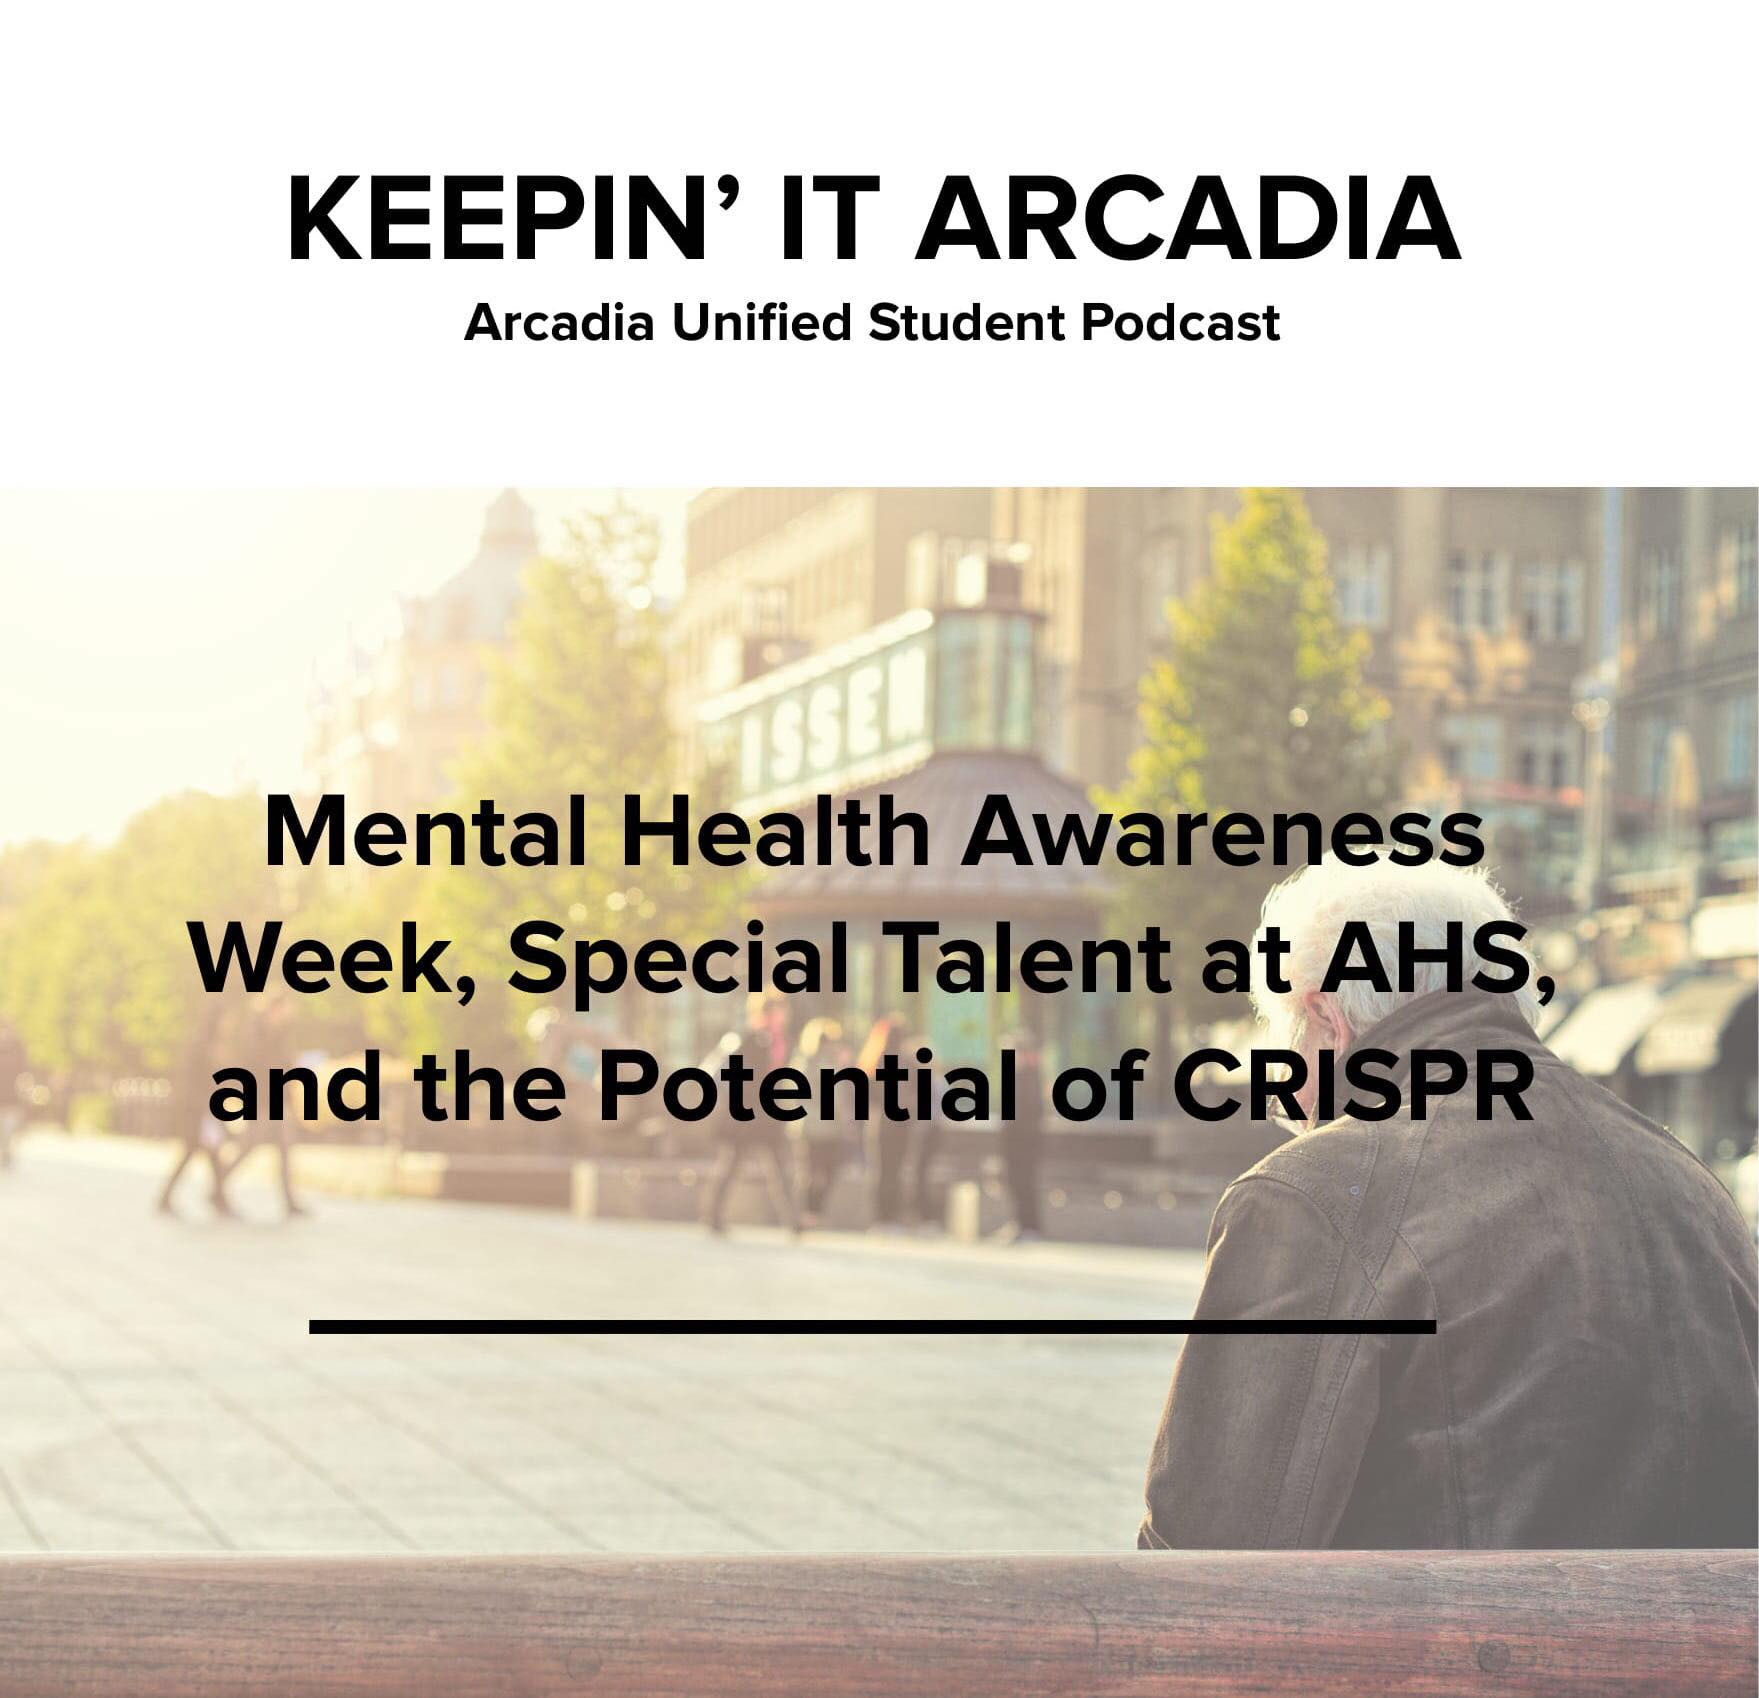 S2 #21 Mental Health Awareness Week, Special Talent at AHS, and the Potential of CRISPR!